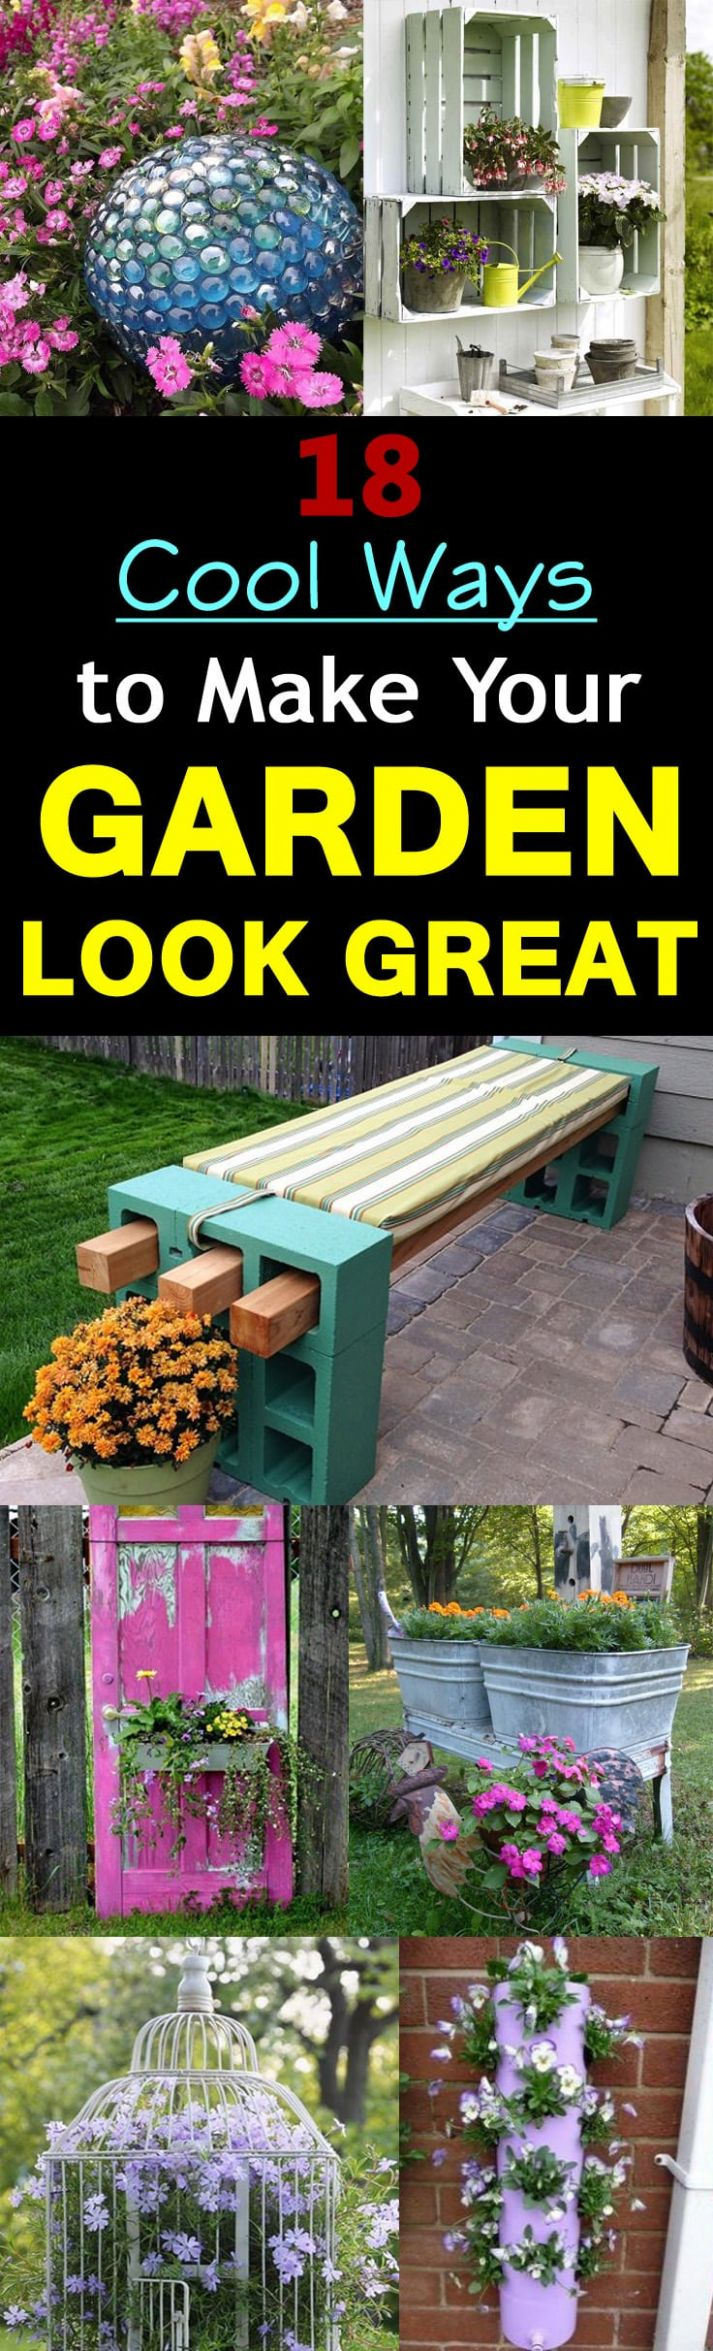 8 Cool DIY Ideas To Make Your Garden Look Great | Balcony Garden Web - garden ideas to make